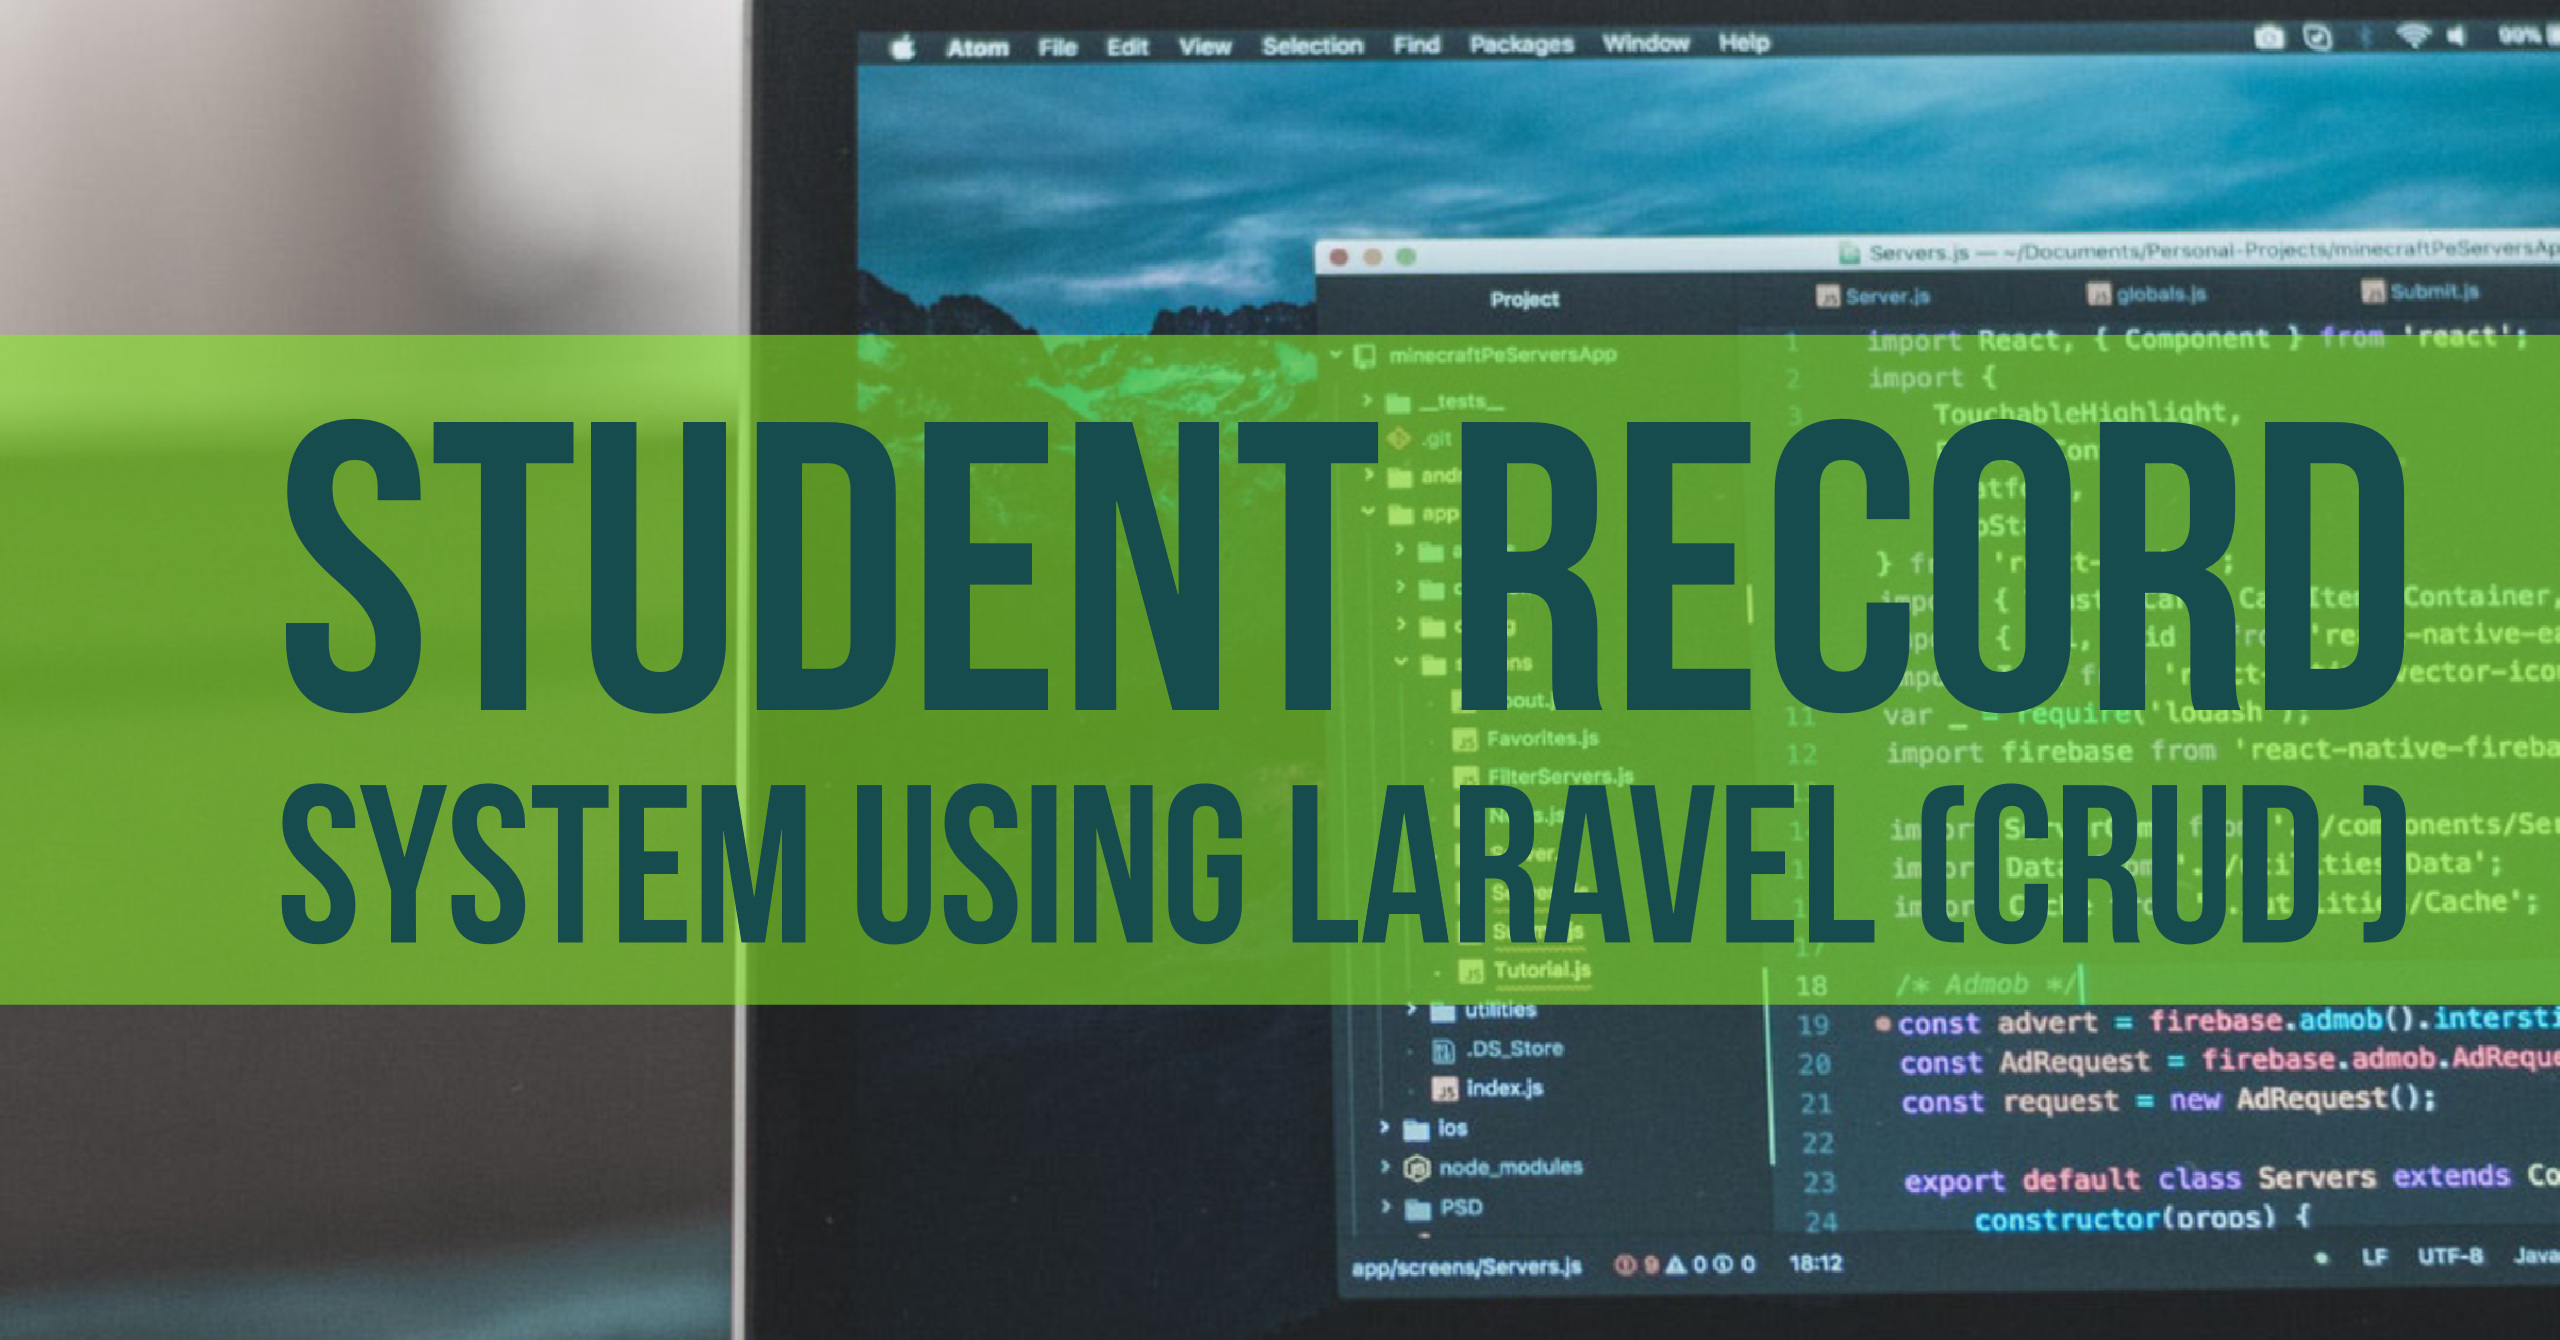 Student Record System  Using LARAVEL (CRUD) - CodeMint Mint for Sale